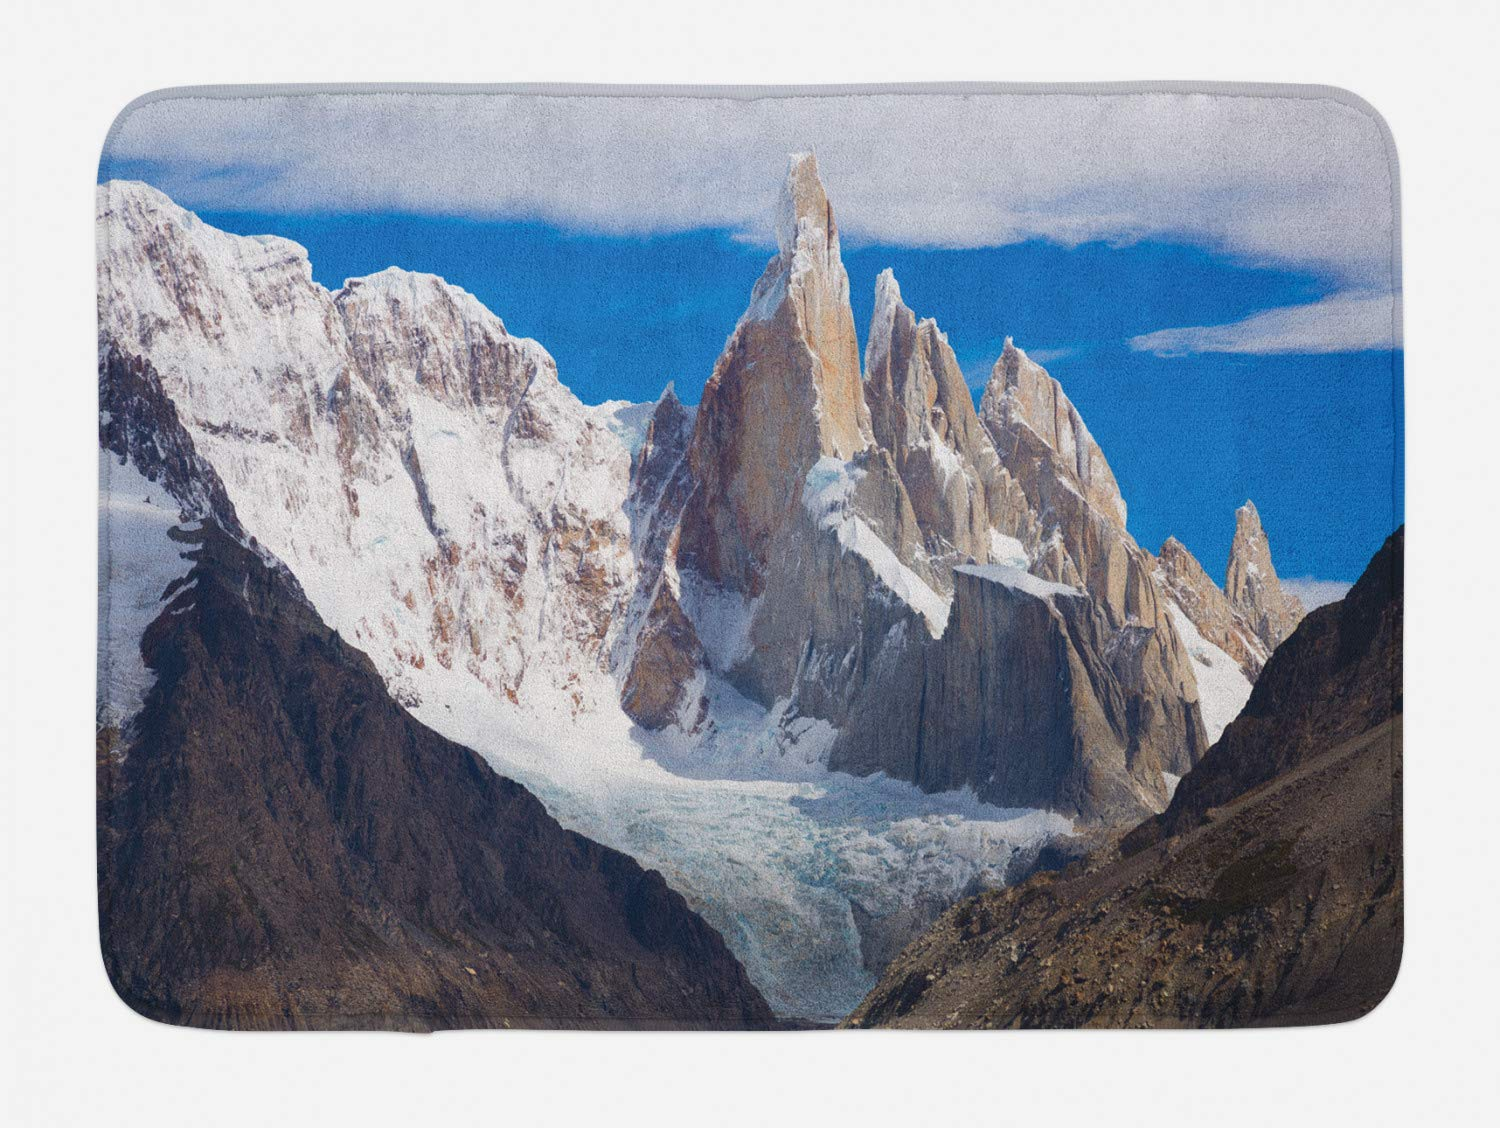 Lohebhuic Picturesque Views of Snow Capped Mountain Peaks and Glaciers of Cerro Chaltel Plush Bathroom Decor Mat with Non Slip Backing,46.8'' W by 70.98'' L